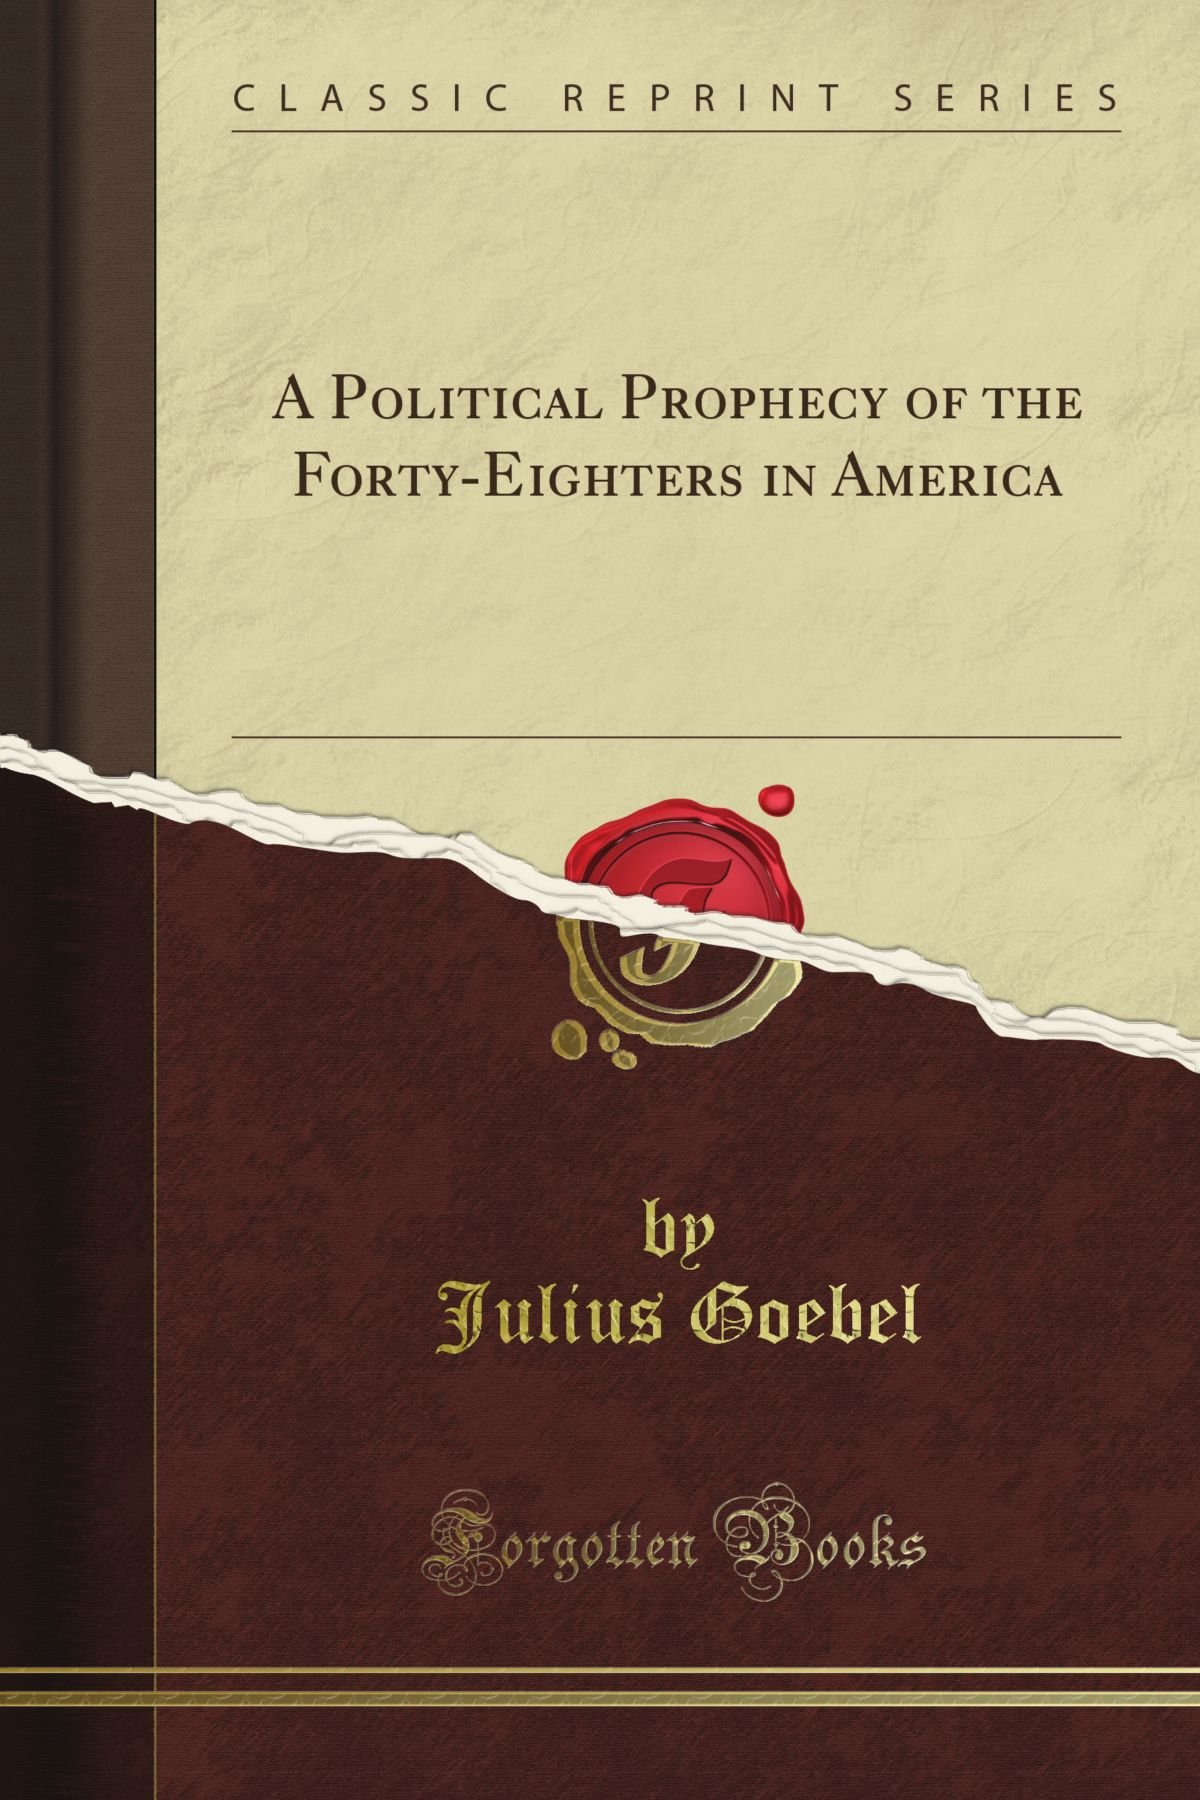 A Political Prophecy of the Forty-Eighters in America (Classic Reprint) PDF